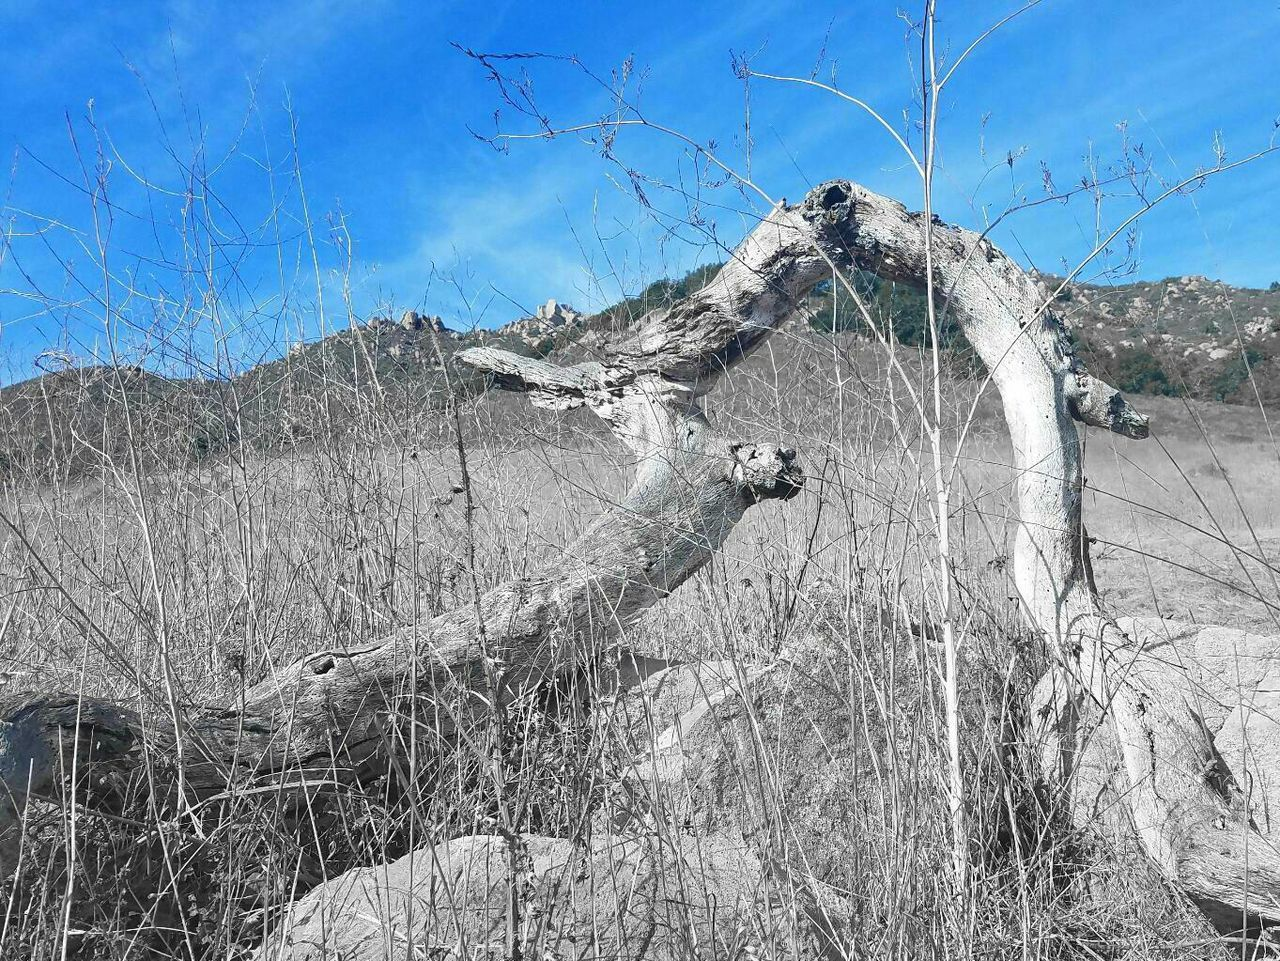 bare tree, dead plant, day, dried plant, destruction, nature, tree, branch, damaged, outdoors, dead tree, no people, landscape, mountain, beauty in nature, sky